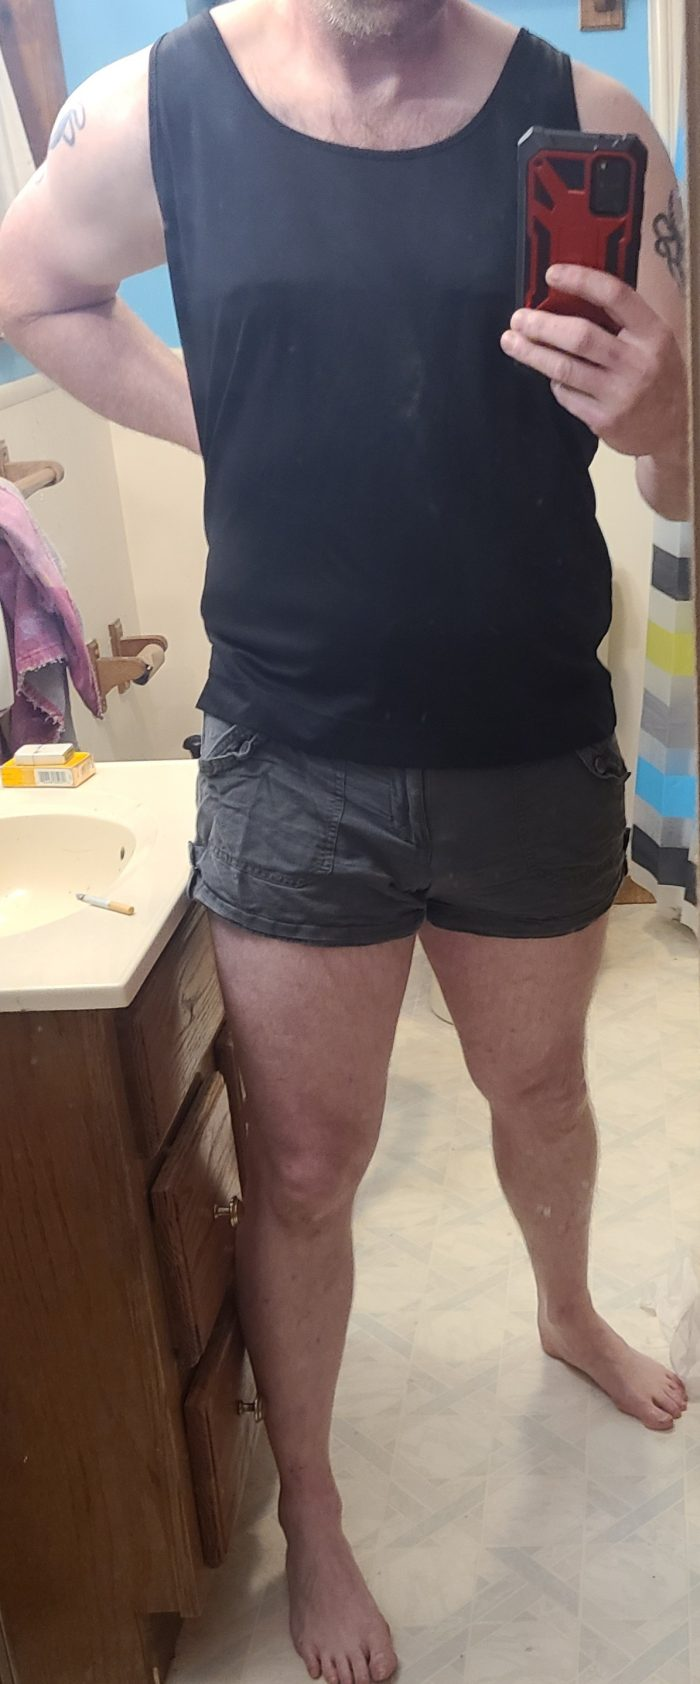 in my favorite shorty shorts